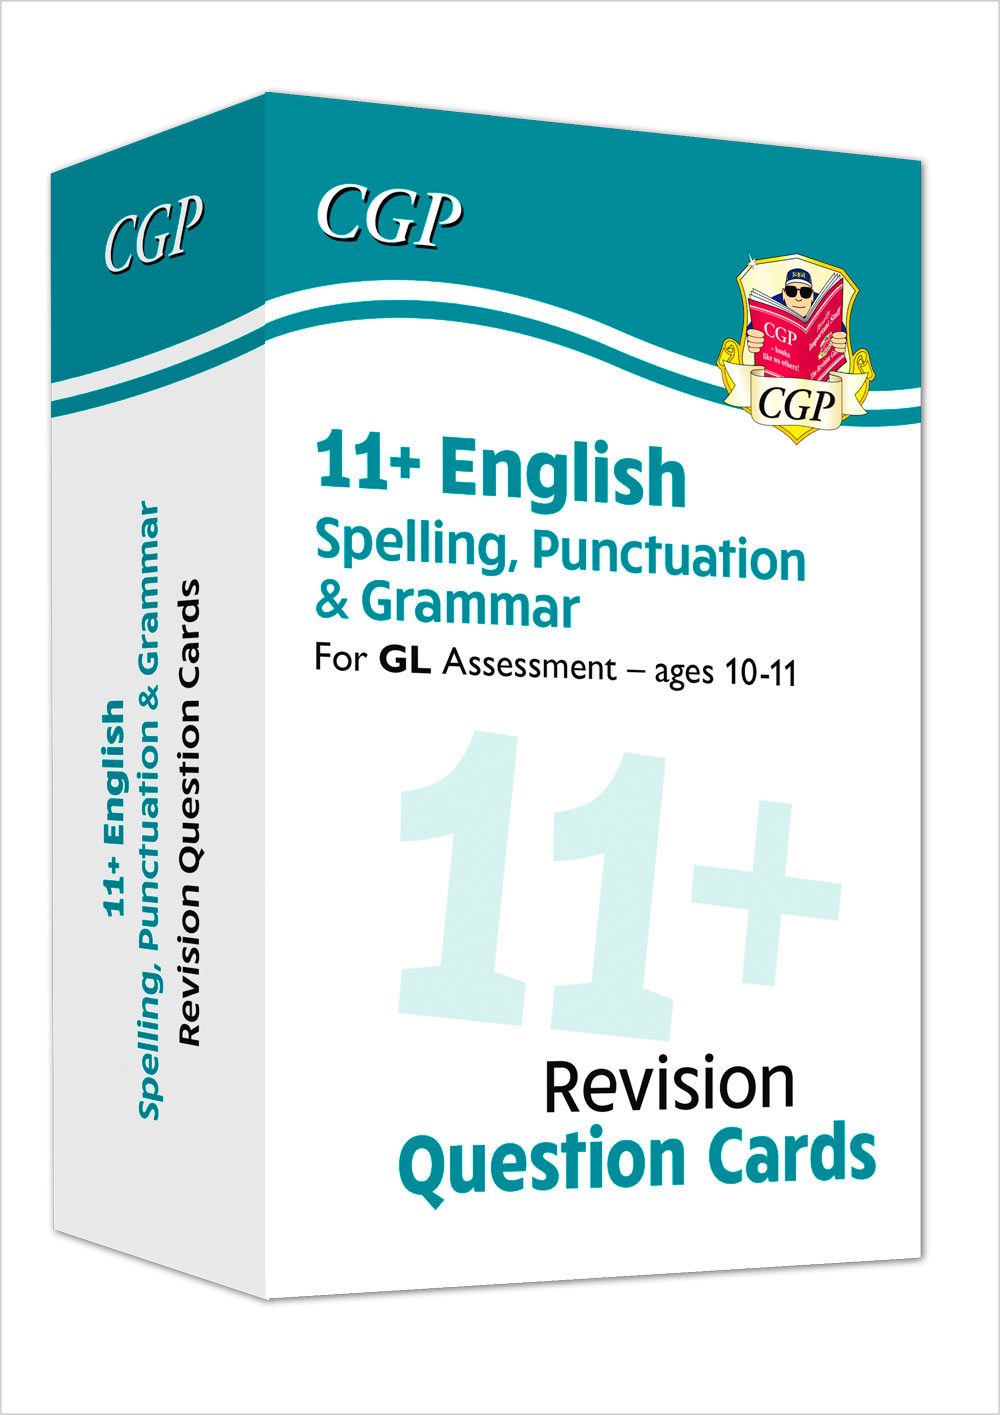 EGFE1 - New 11+ GL Revision Question Cards: English Spelling, Punctuation & Grammar - Ages 10-11